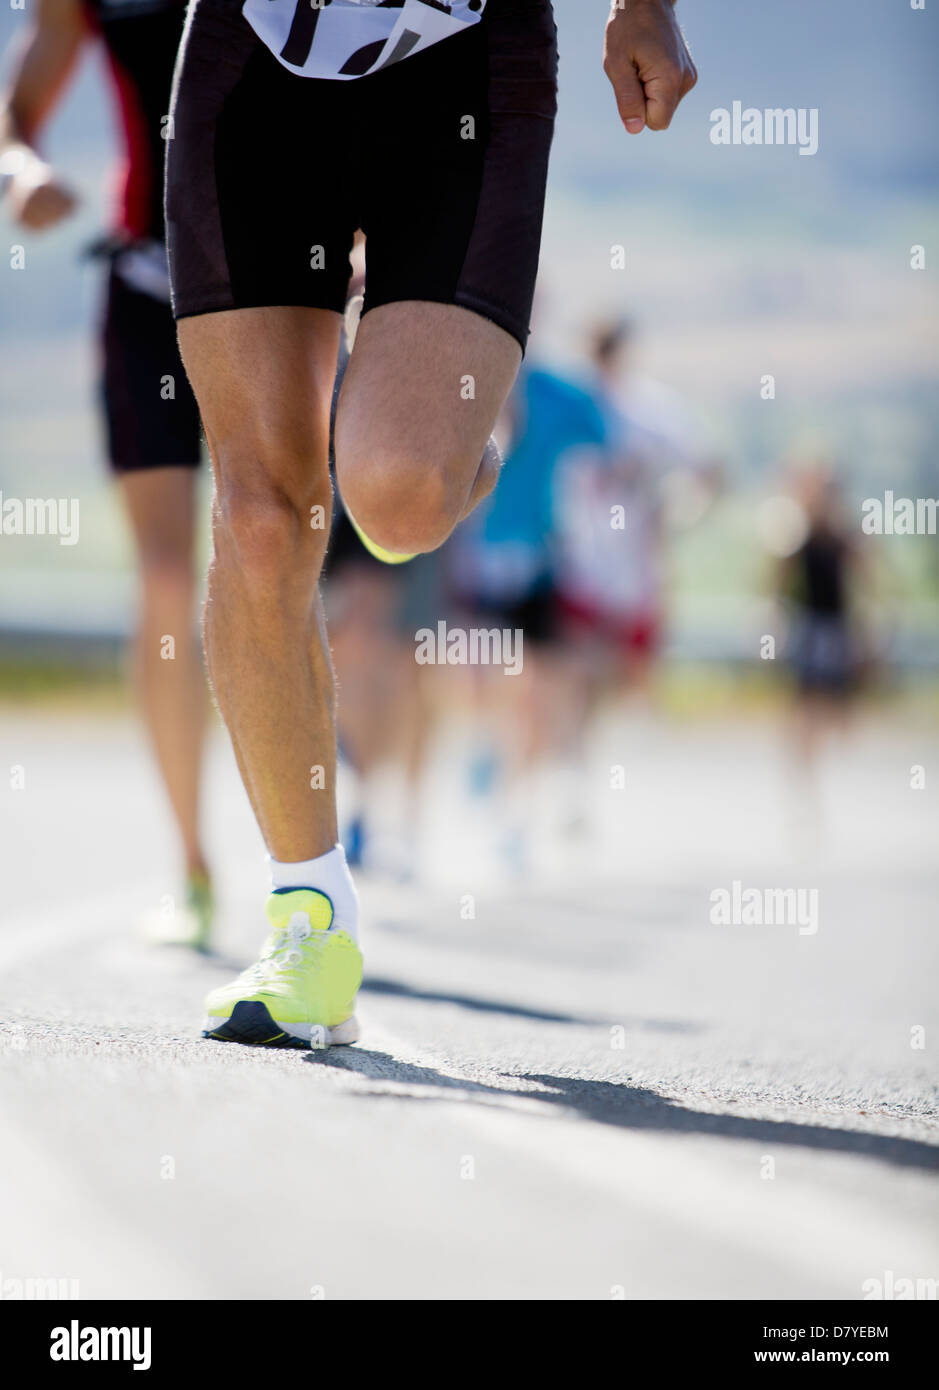 Runner in race on rural road - Stock Image